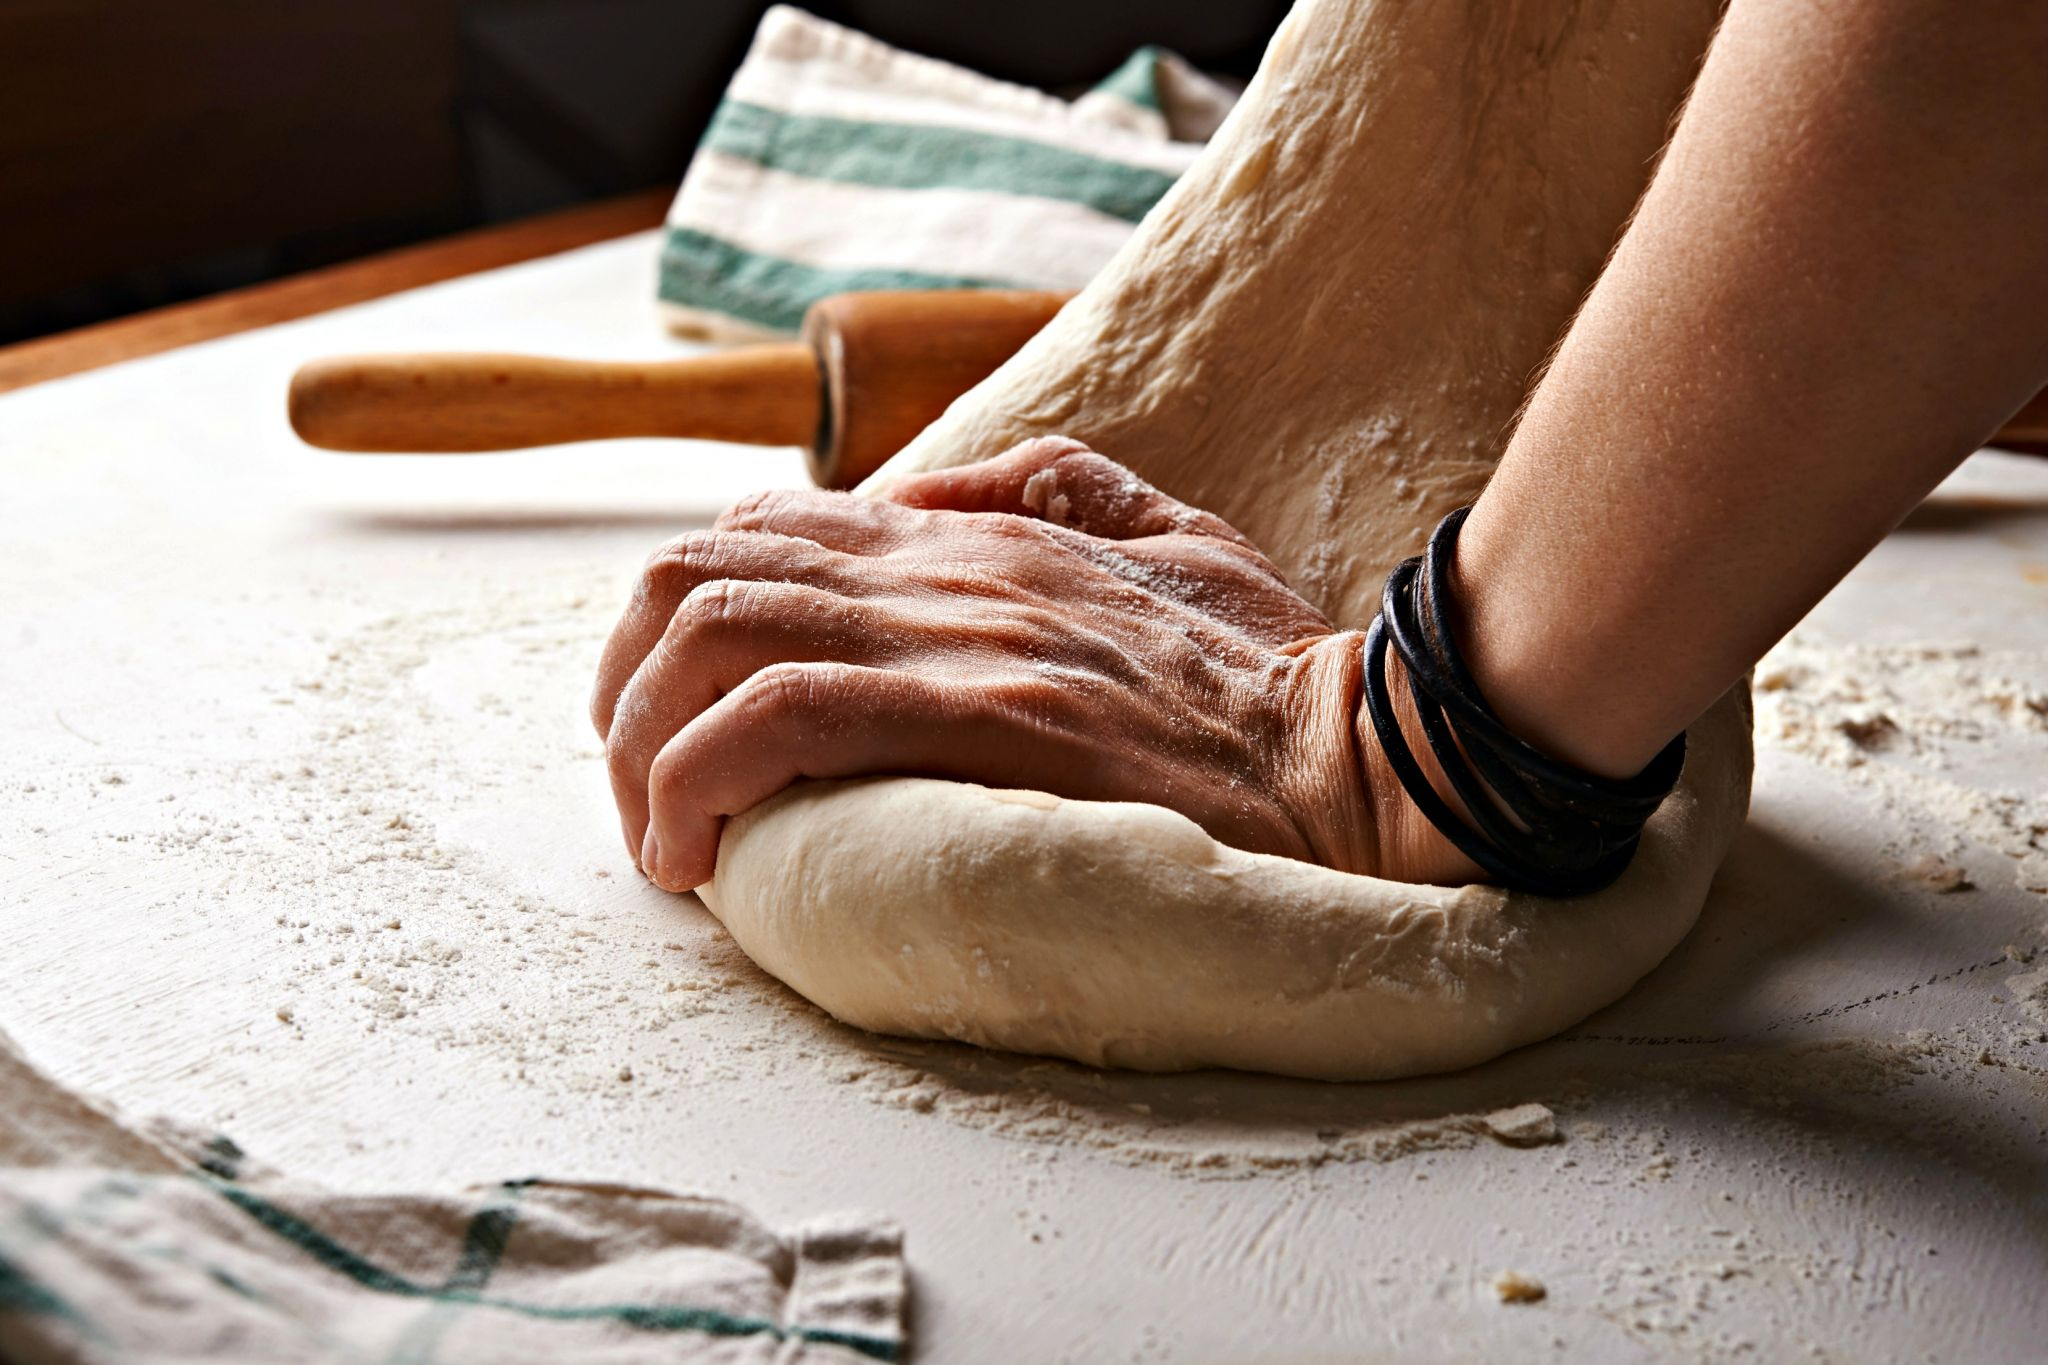 Half term fun could be something simple like baking home-made bread